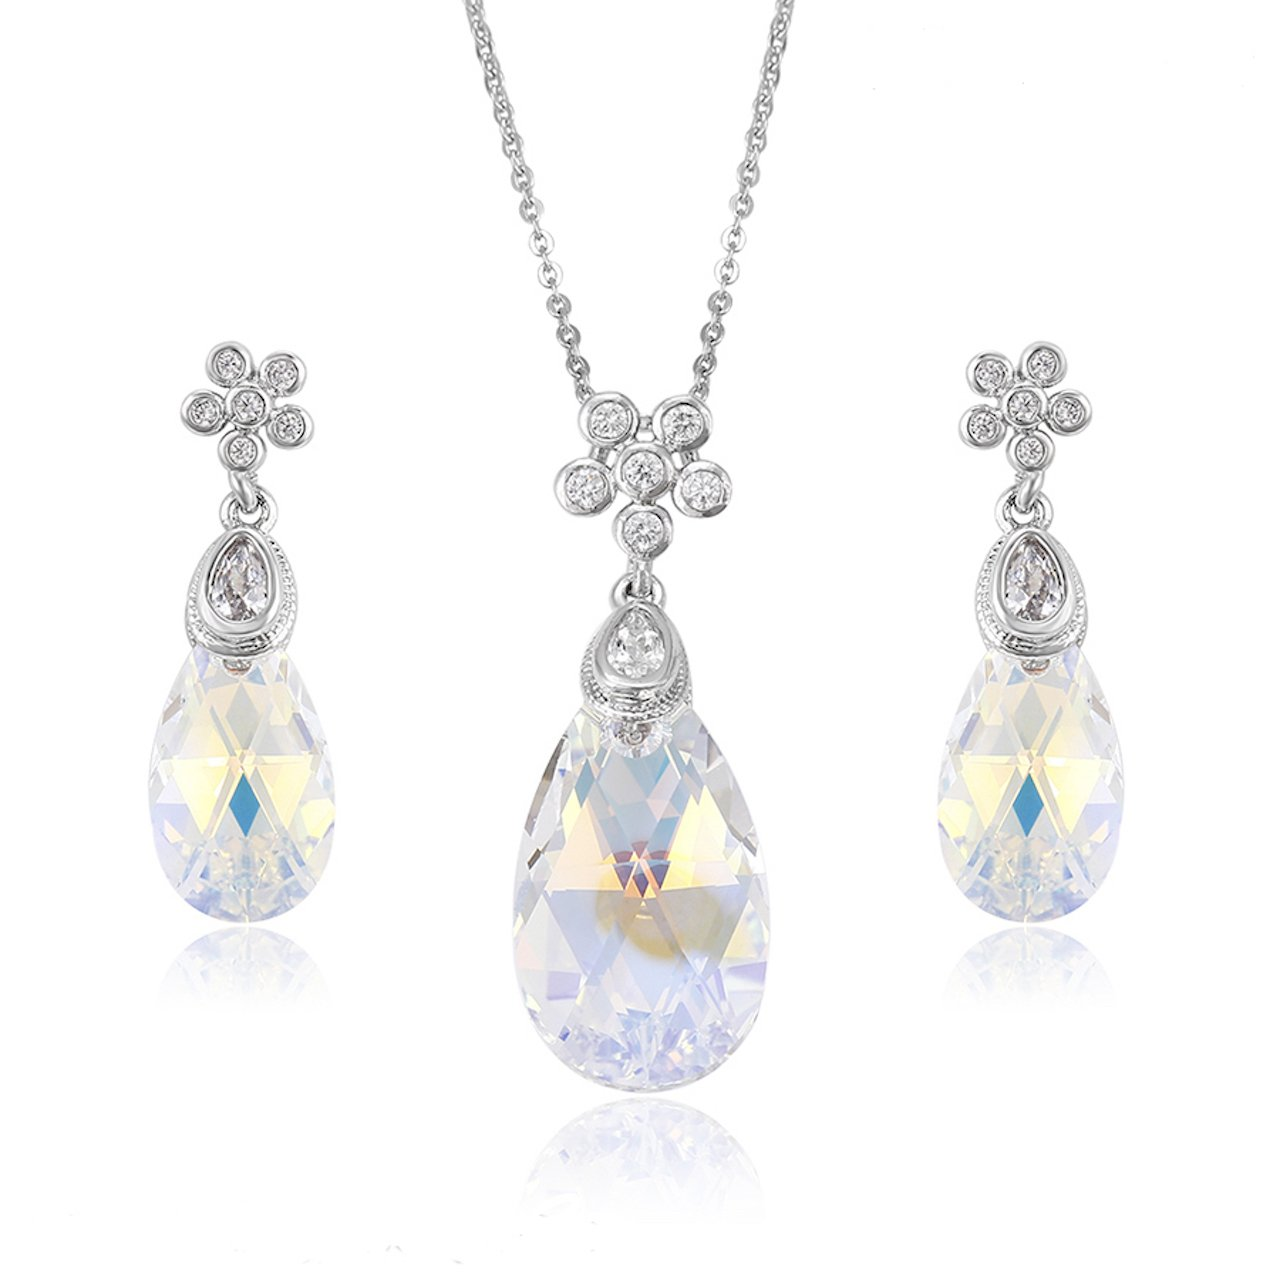 Crystals from Swarovski 'Raindrop-falling-off-A-Flower' Jewellery Set - Office Jewellery or Party Jewellery - Aurora Borealis - Excellent as a Gift Idea